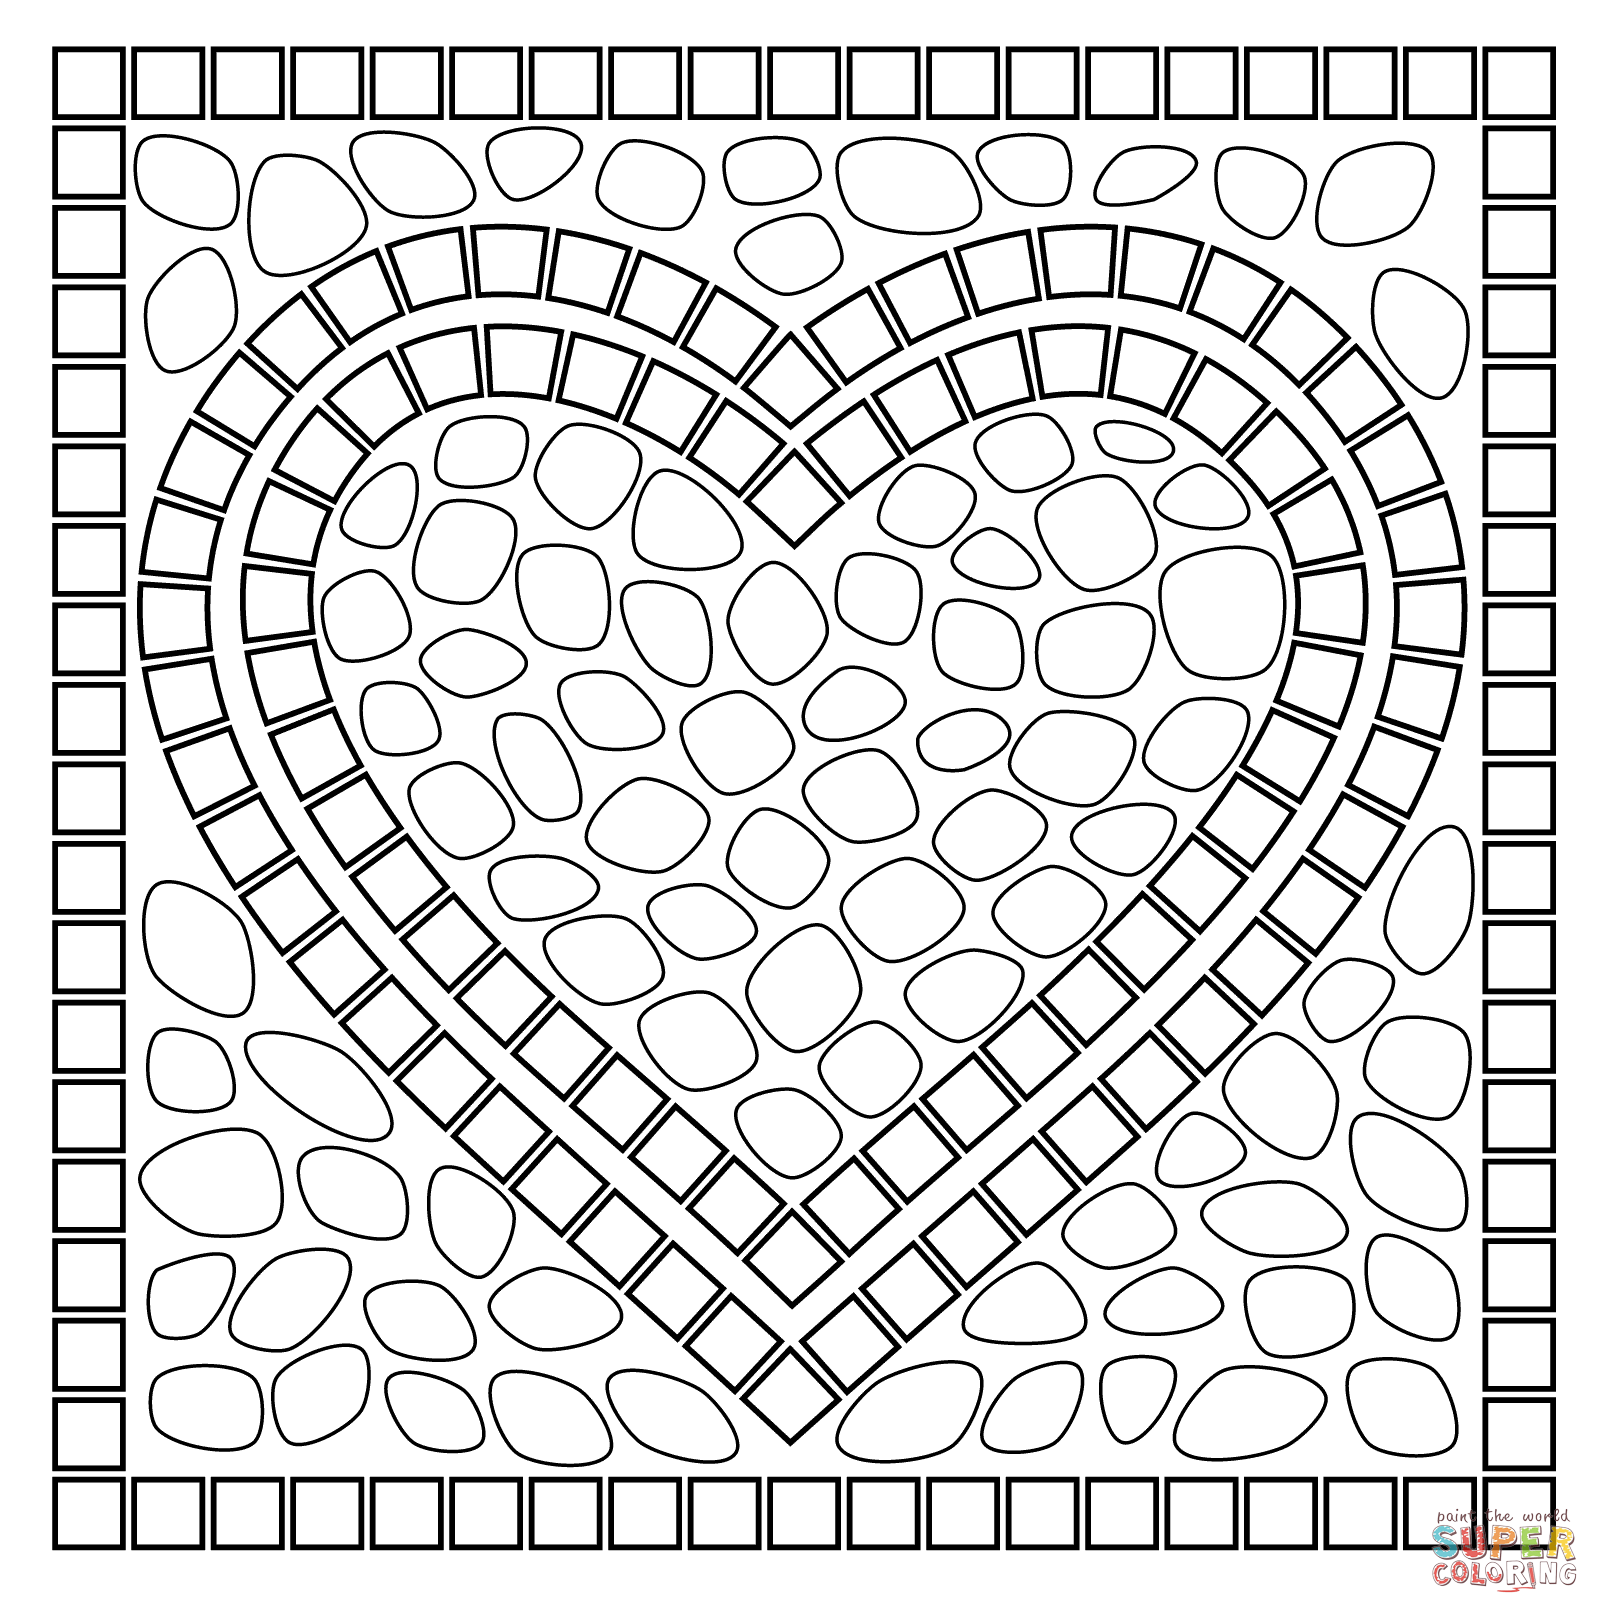 mosaic pictures to colour mosaic coloring pages for kids at getdrawings free download colour pictures mosaic to